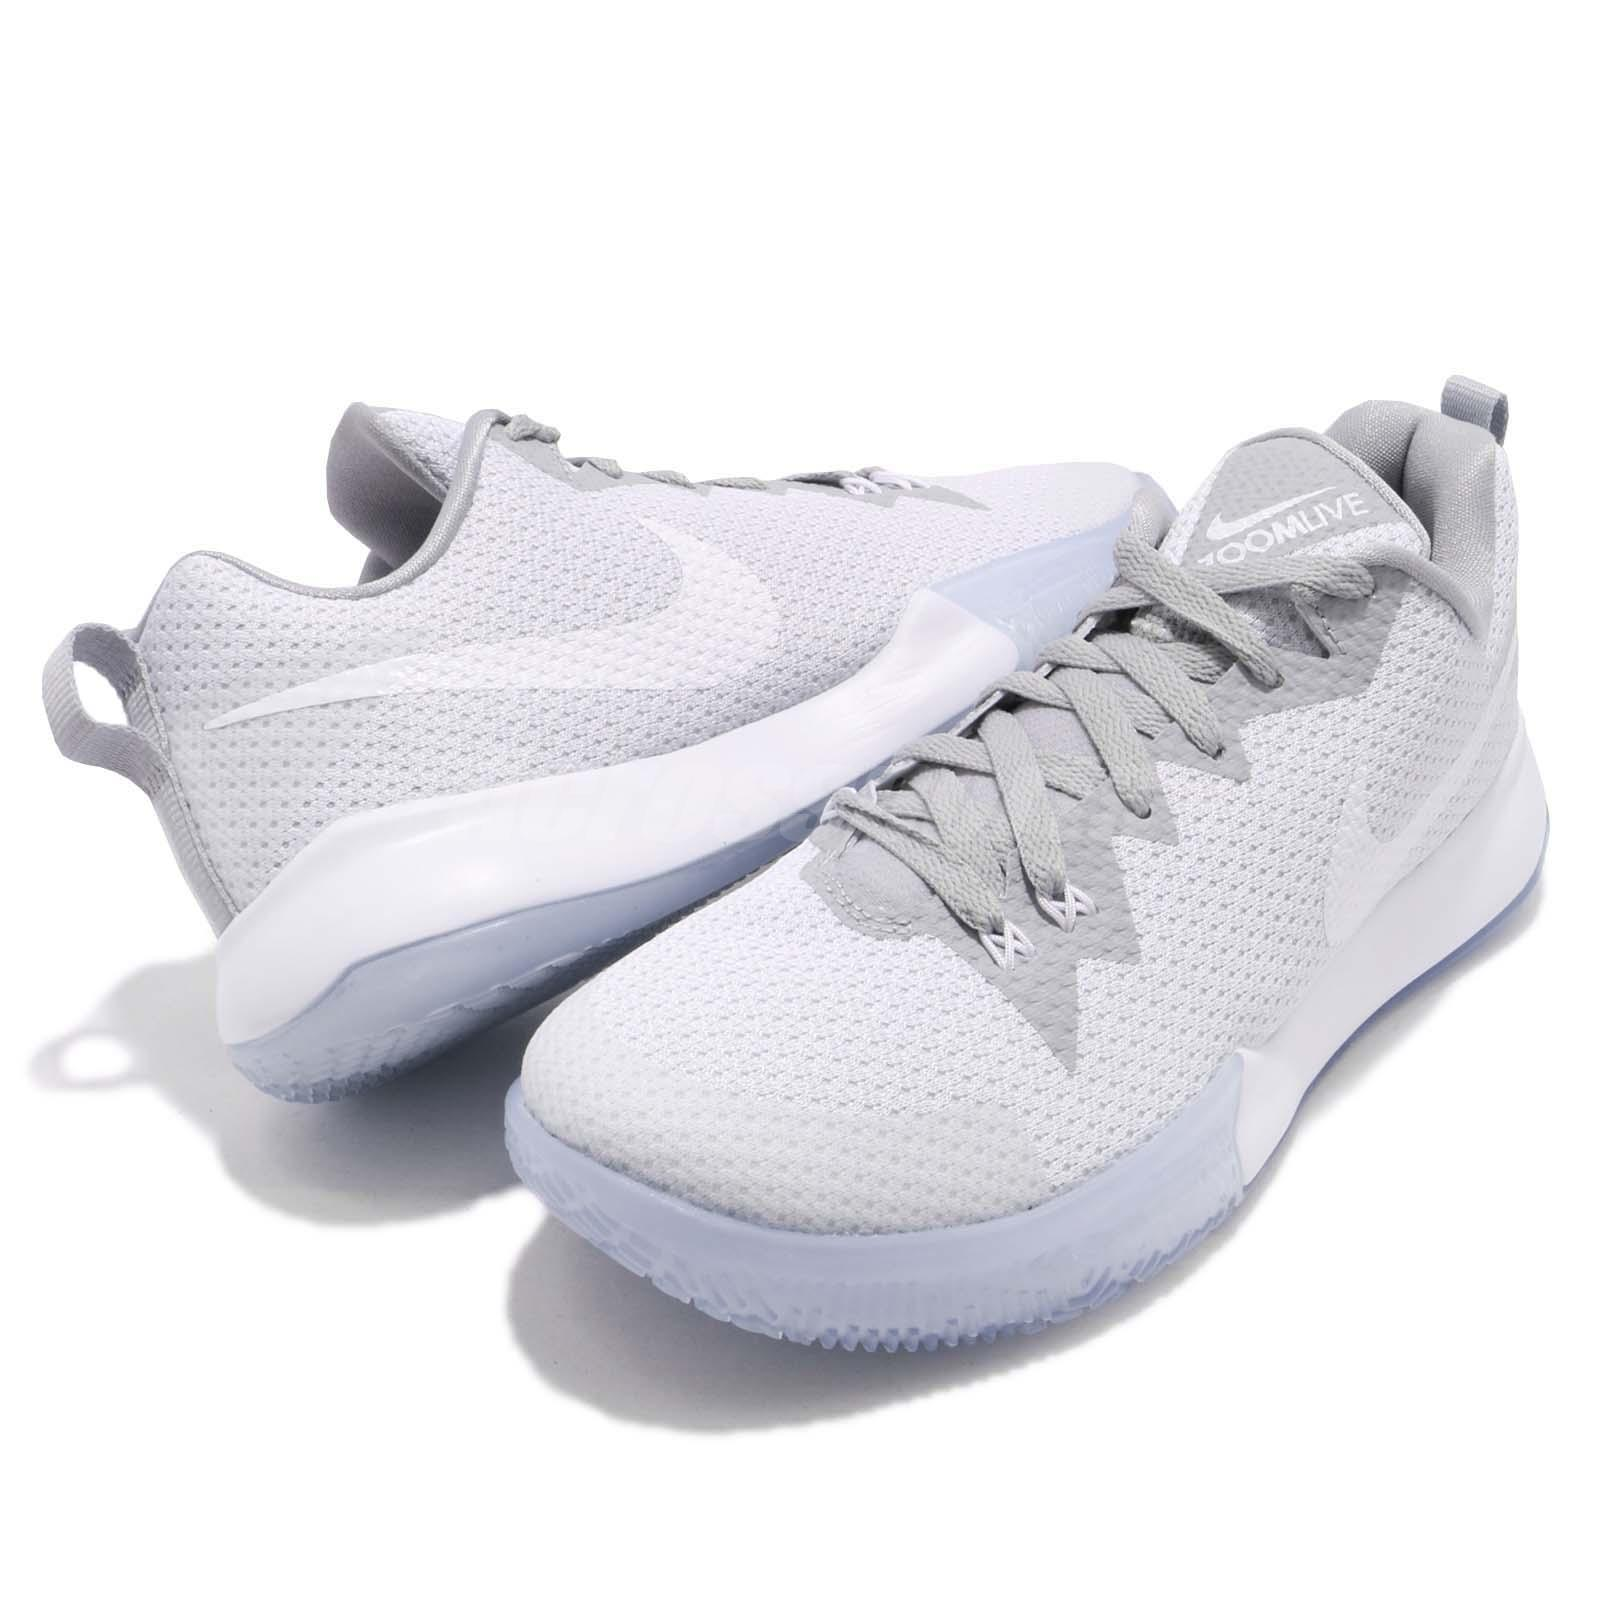 save off 64d46 175a1 Nike Zoom Live II EP 2 White Wolf Grey Men Basketball Shoes Sneakers ...